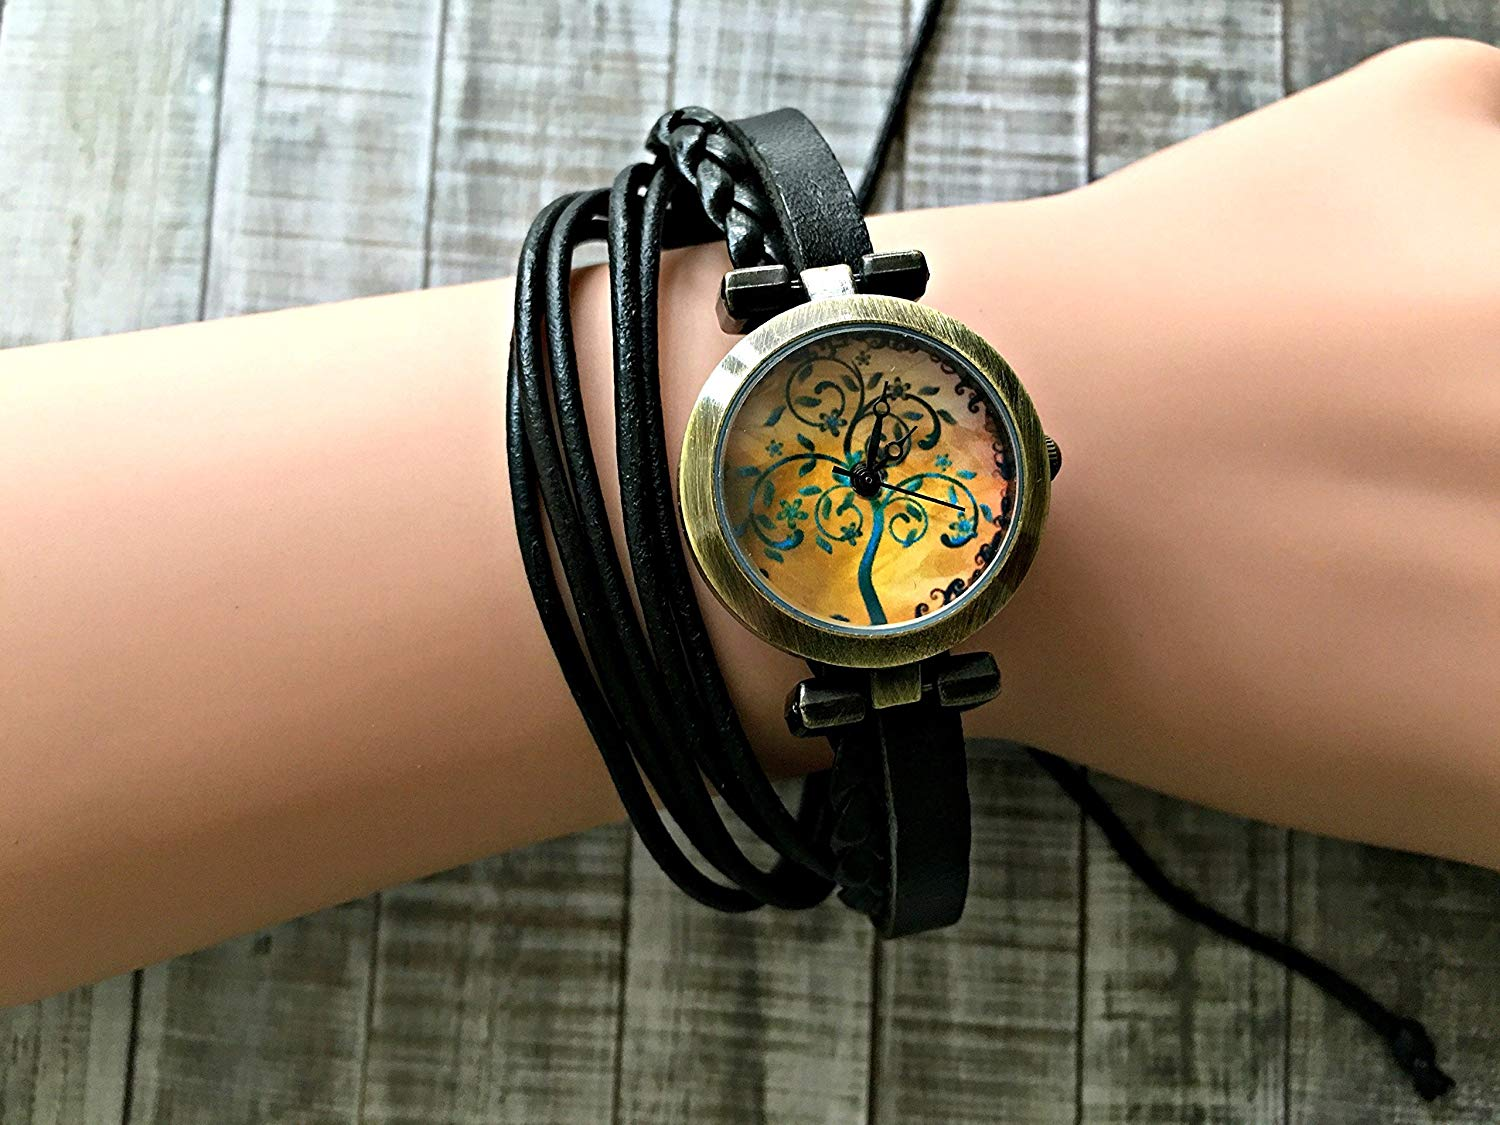 Tree Wrap Bracelet Leather Watch, Leather Wrap Bracelet Watch, Leather Wrap Art Watch, Vintage Retro Wrap Bracelet Watch, Wrap Genuine Leather Watch 009